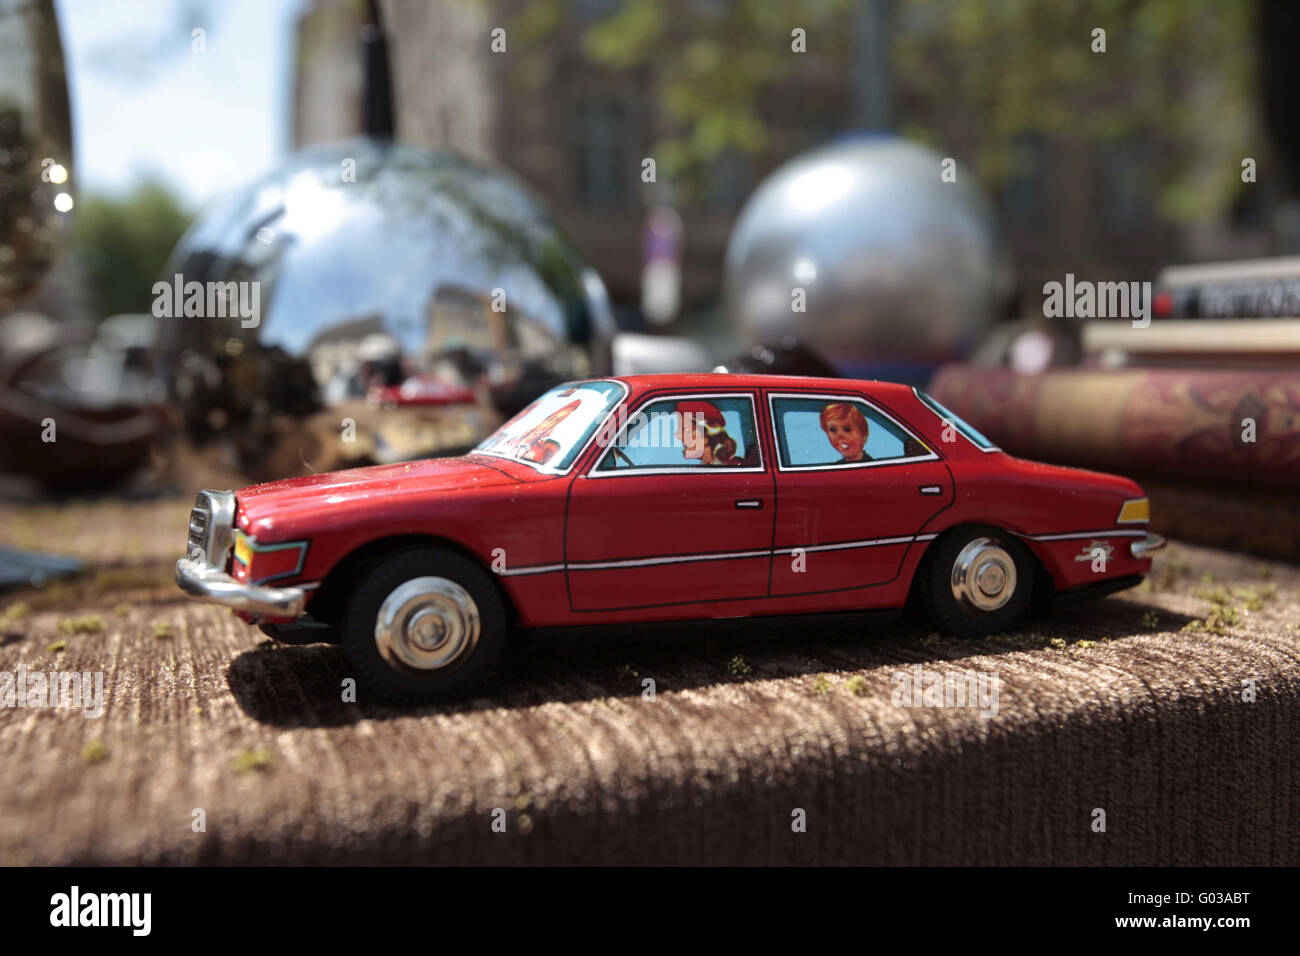 France car boot sale car play toys - Stock Image